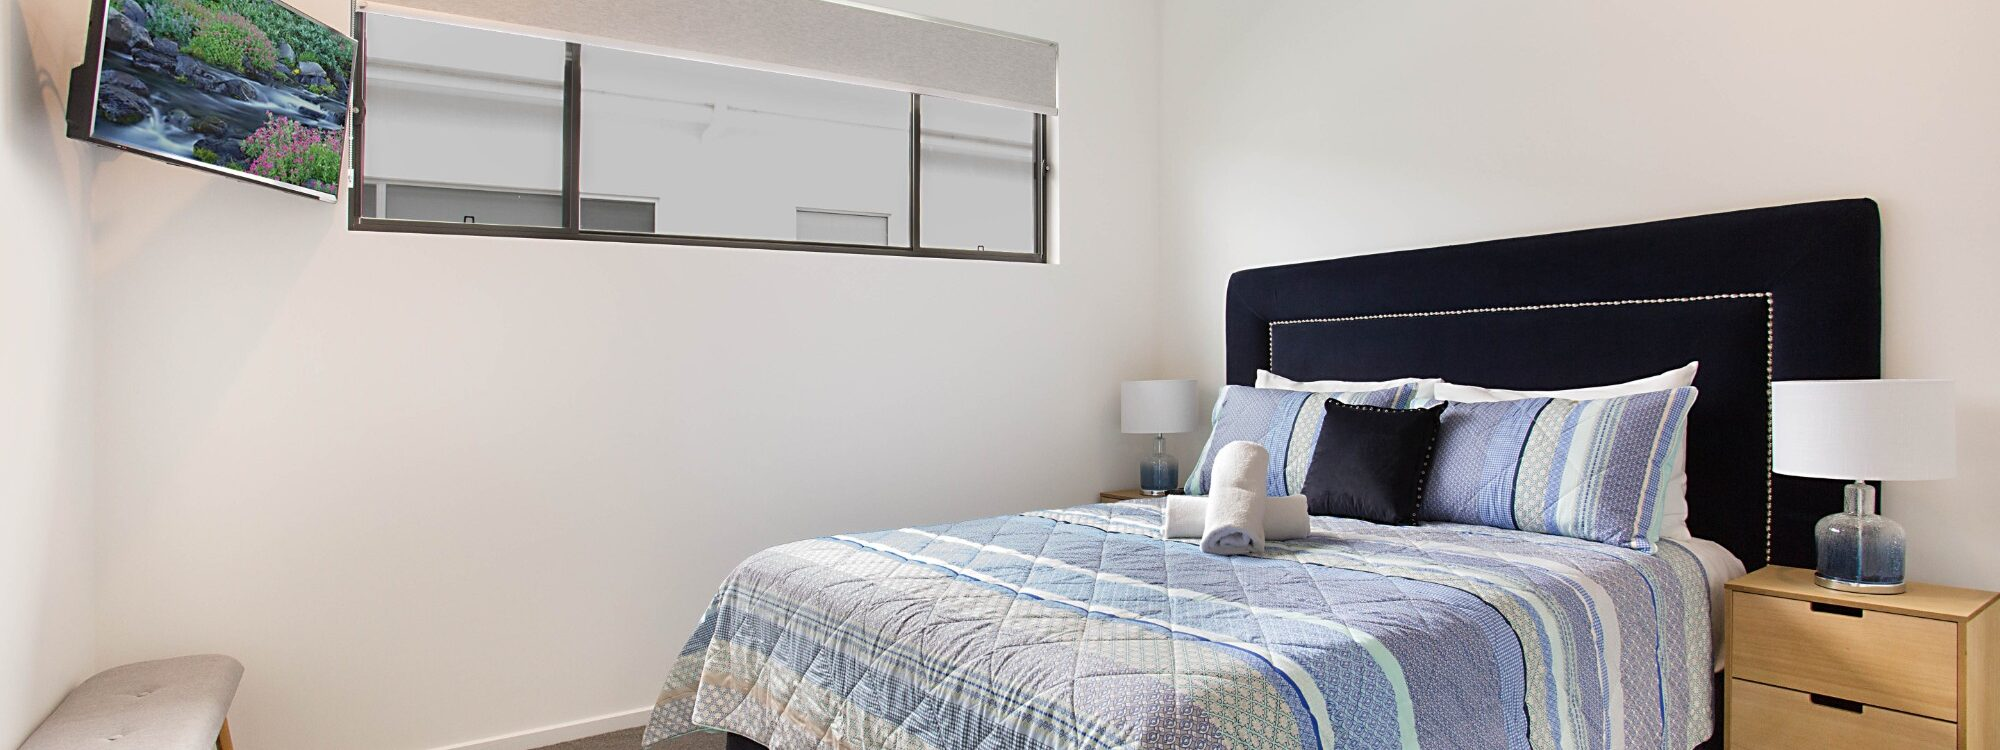 Bay Breeze - Broadbeach waters - Gold Coast - Bedroom 2